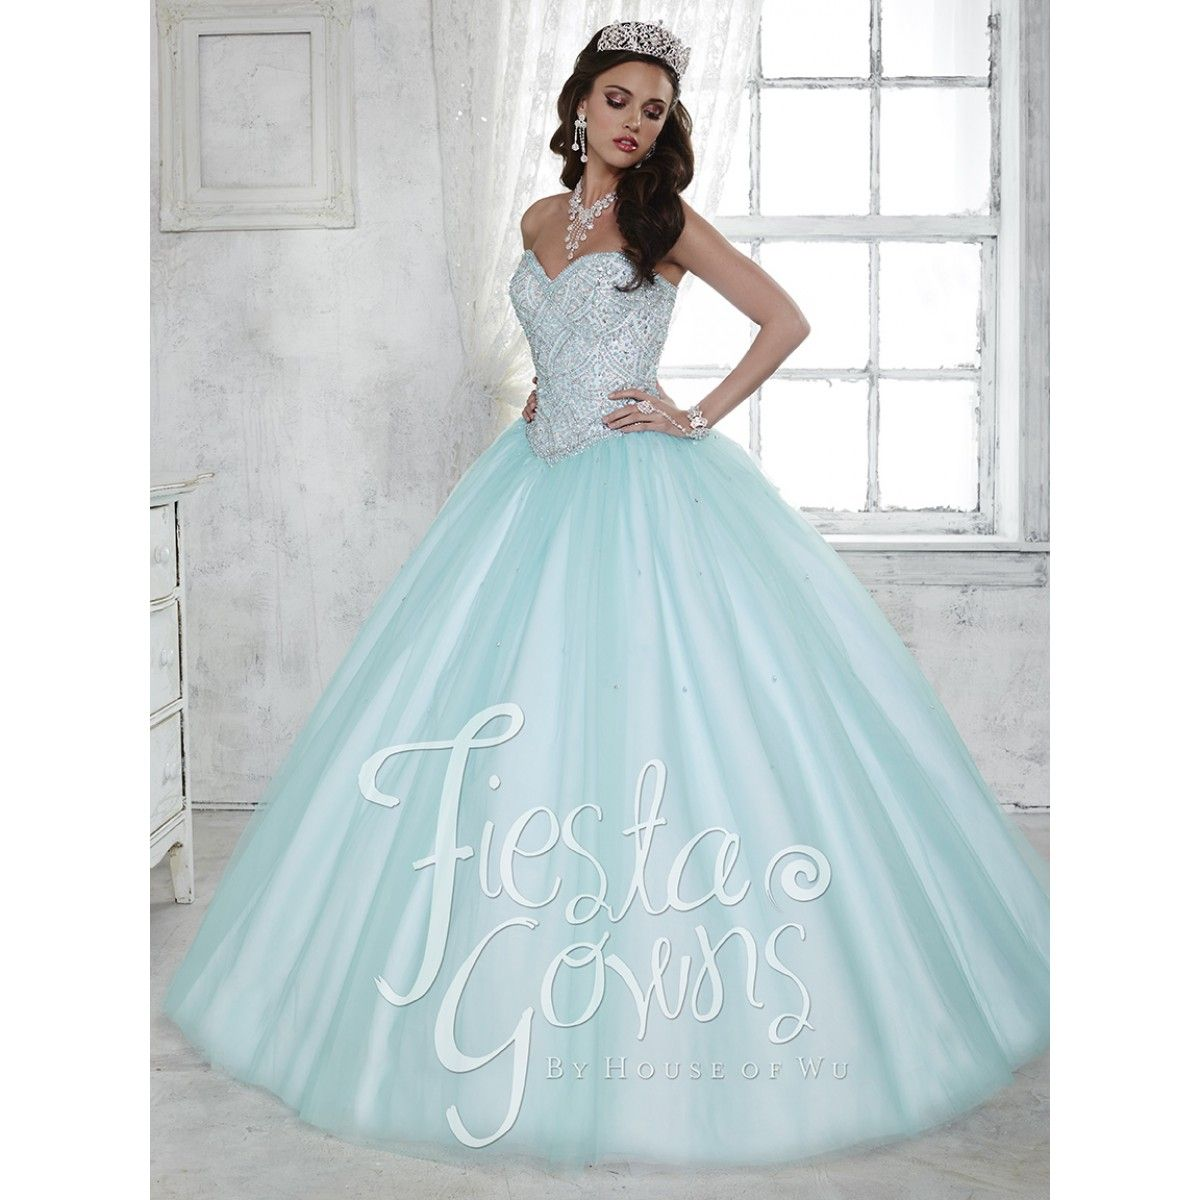 House of Wu Fiesta Gowns Style 56284   country wedding   Pinterest ...